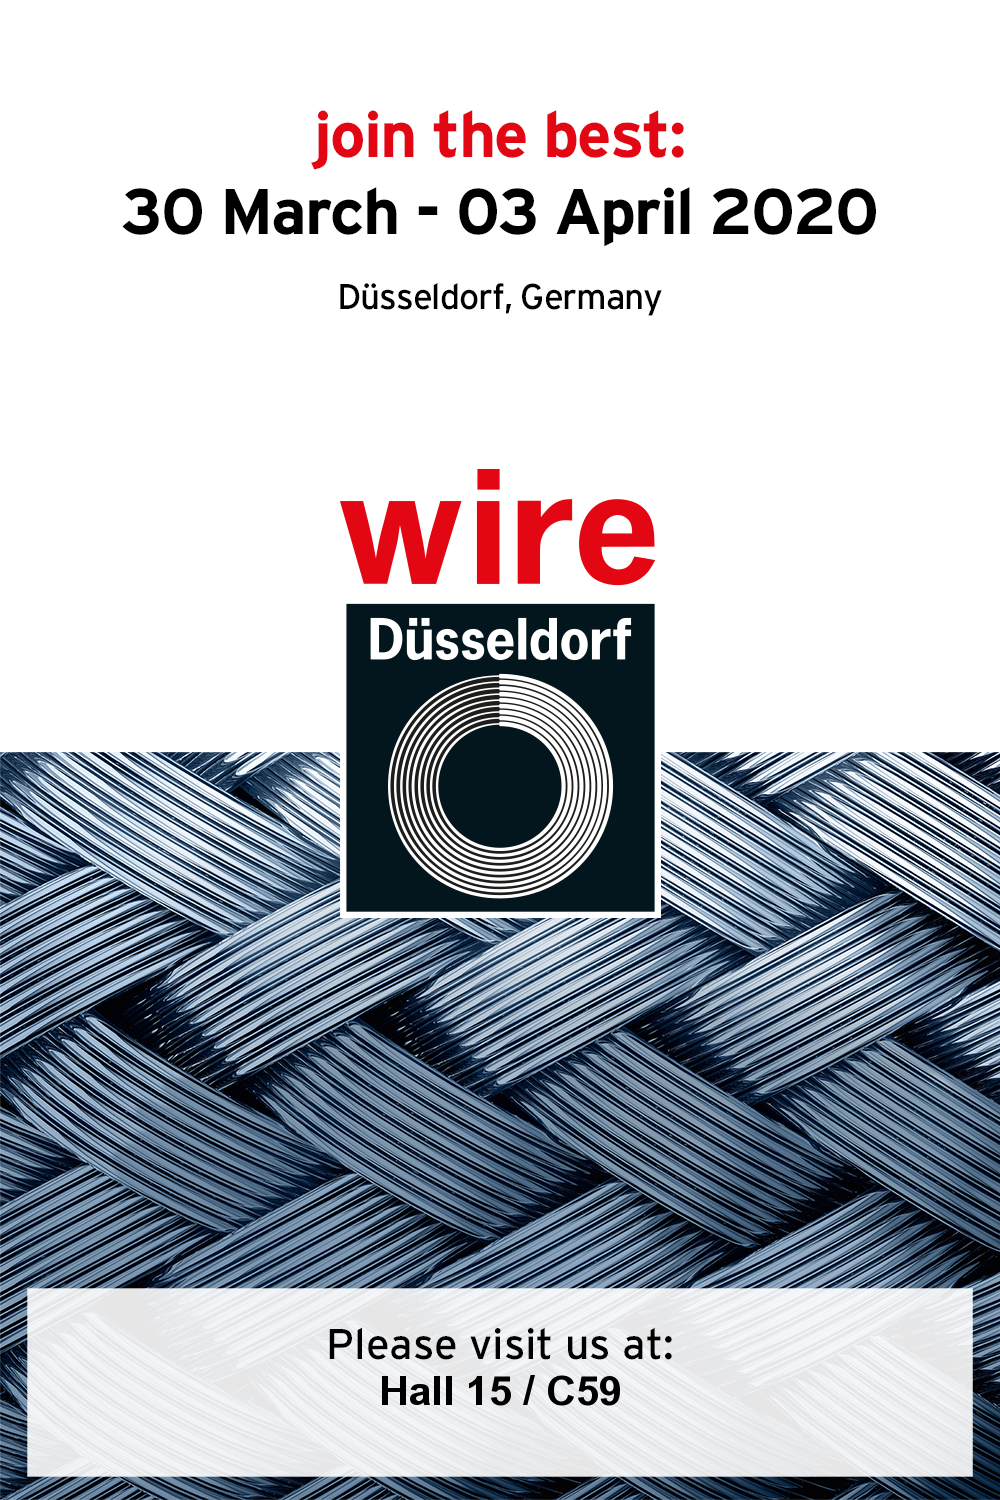 Juli is to attend Wire & Tube 2020 in Dusseldorf.